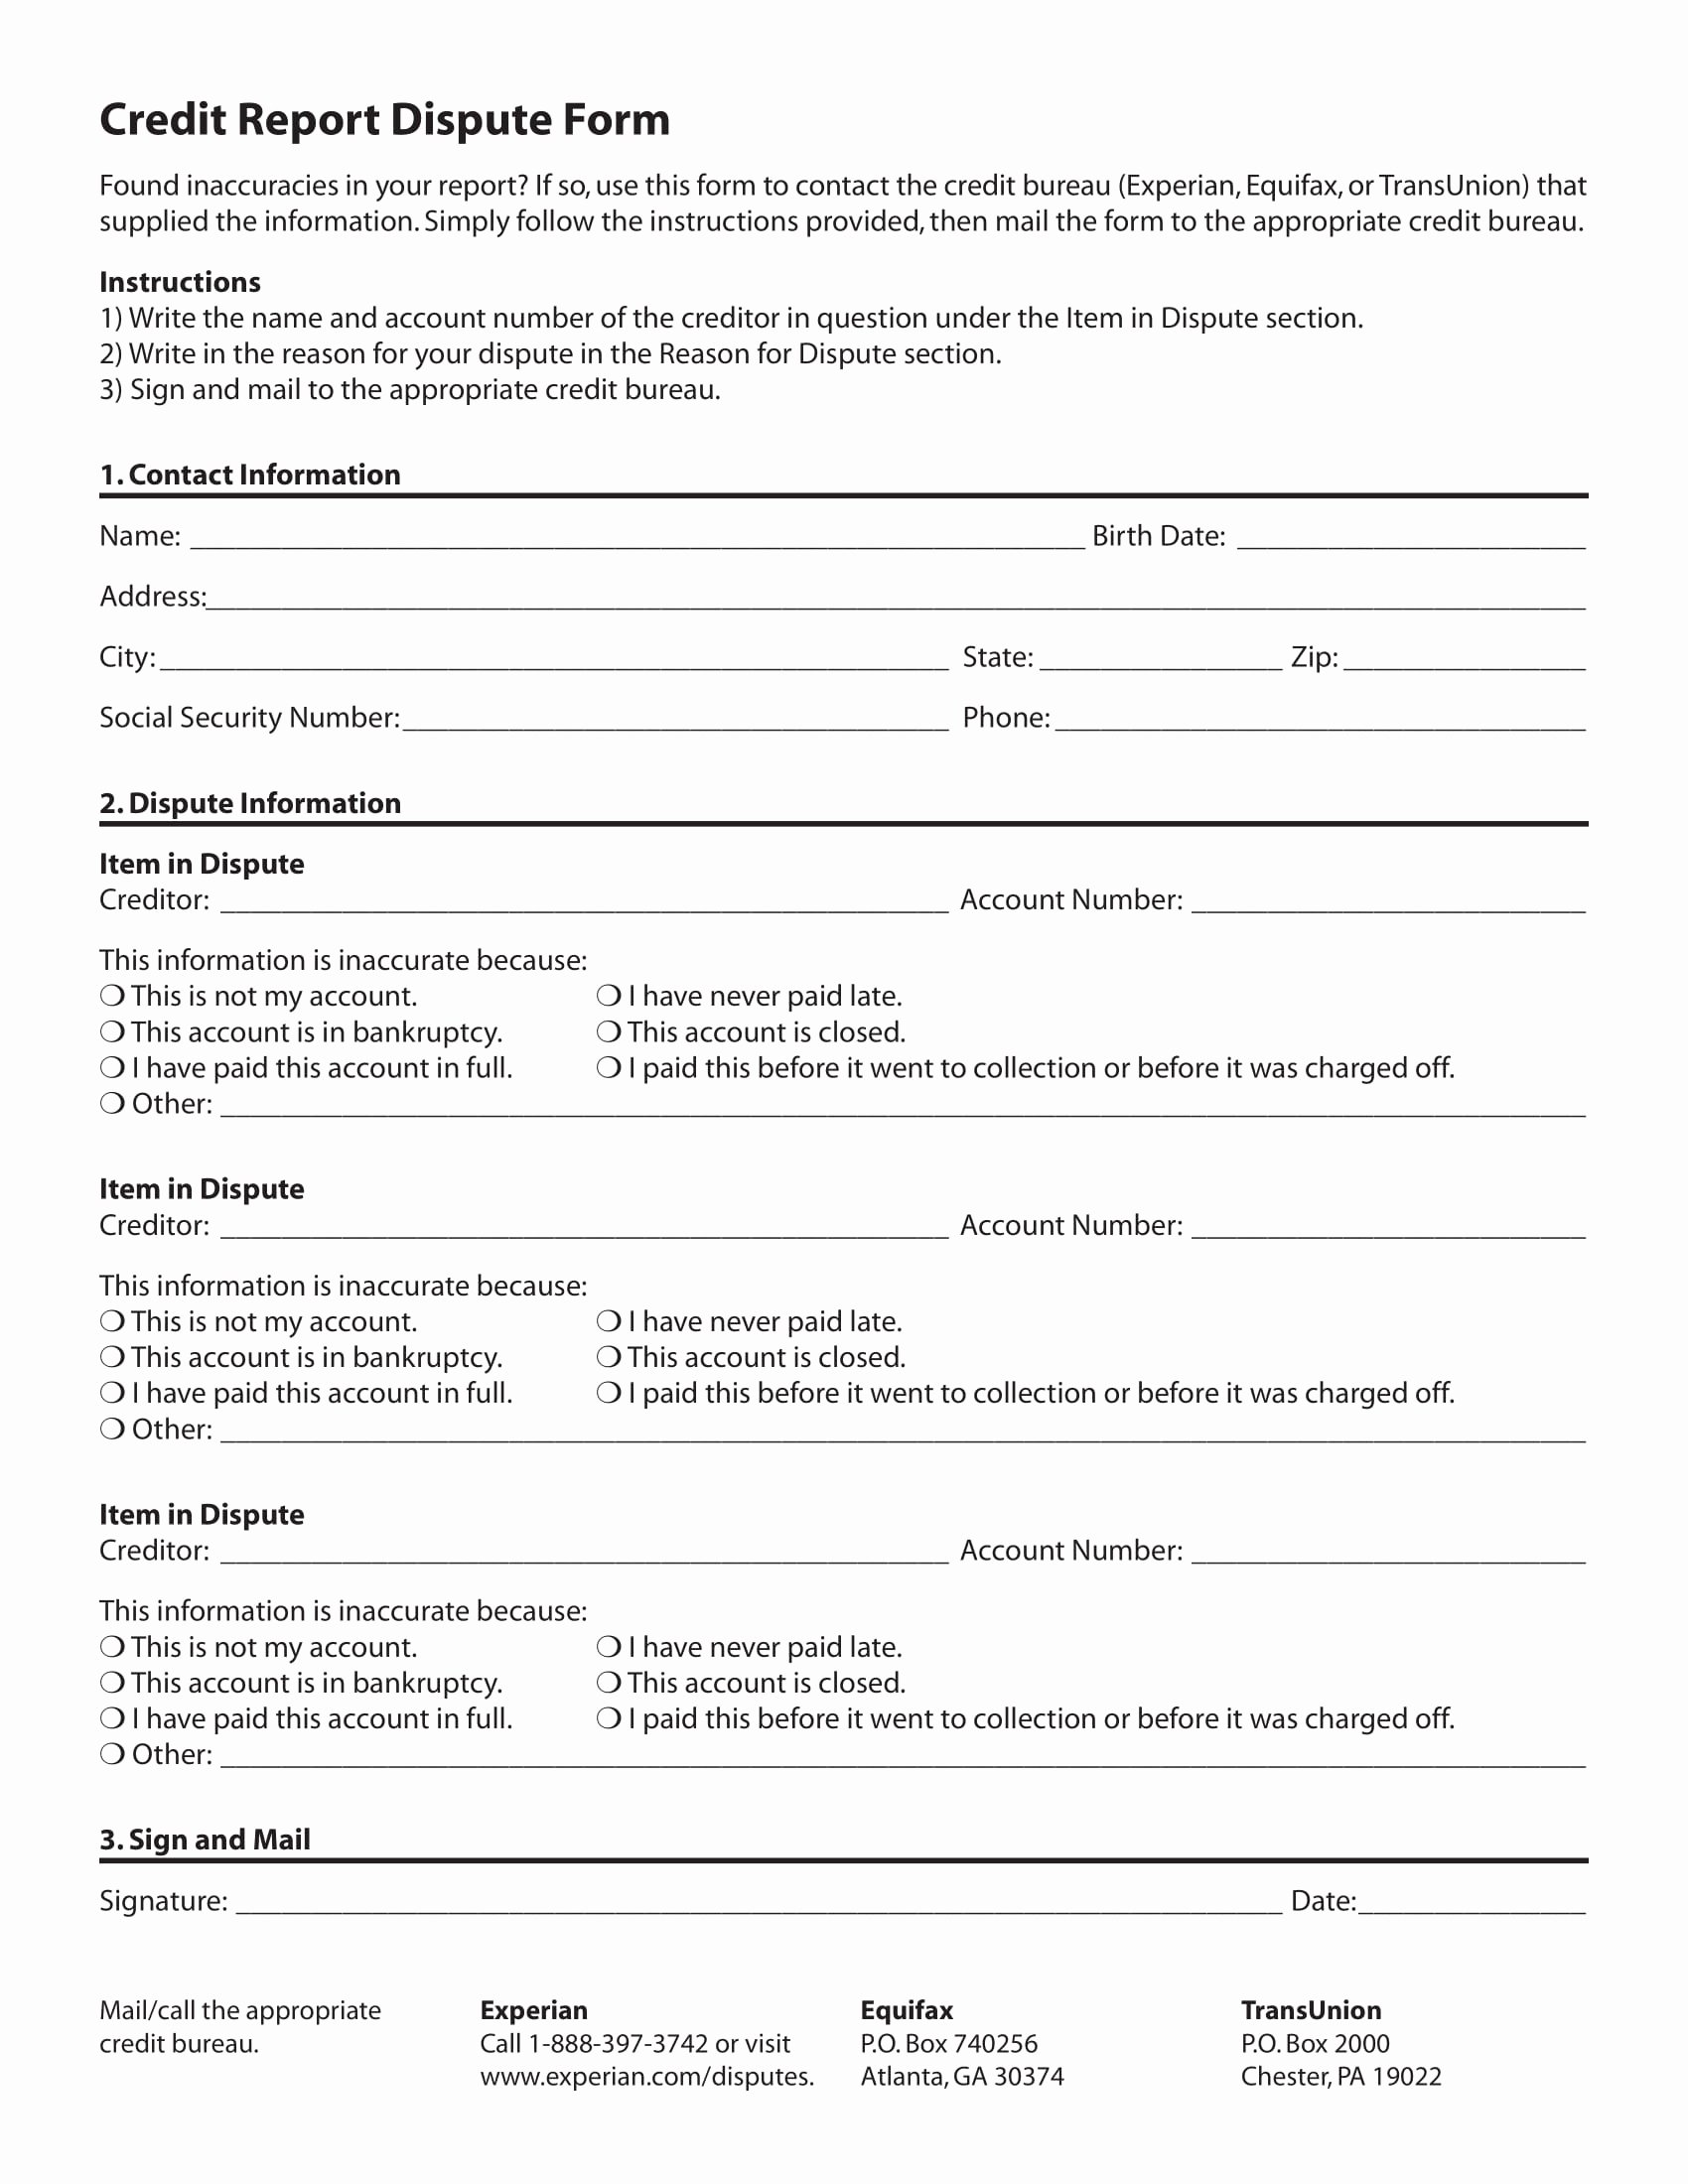 Fake Credit Report Template Awesome 12 Credit Report forms Pdf